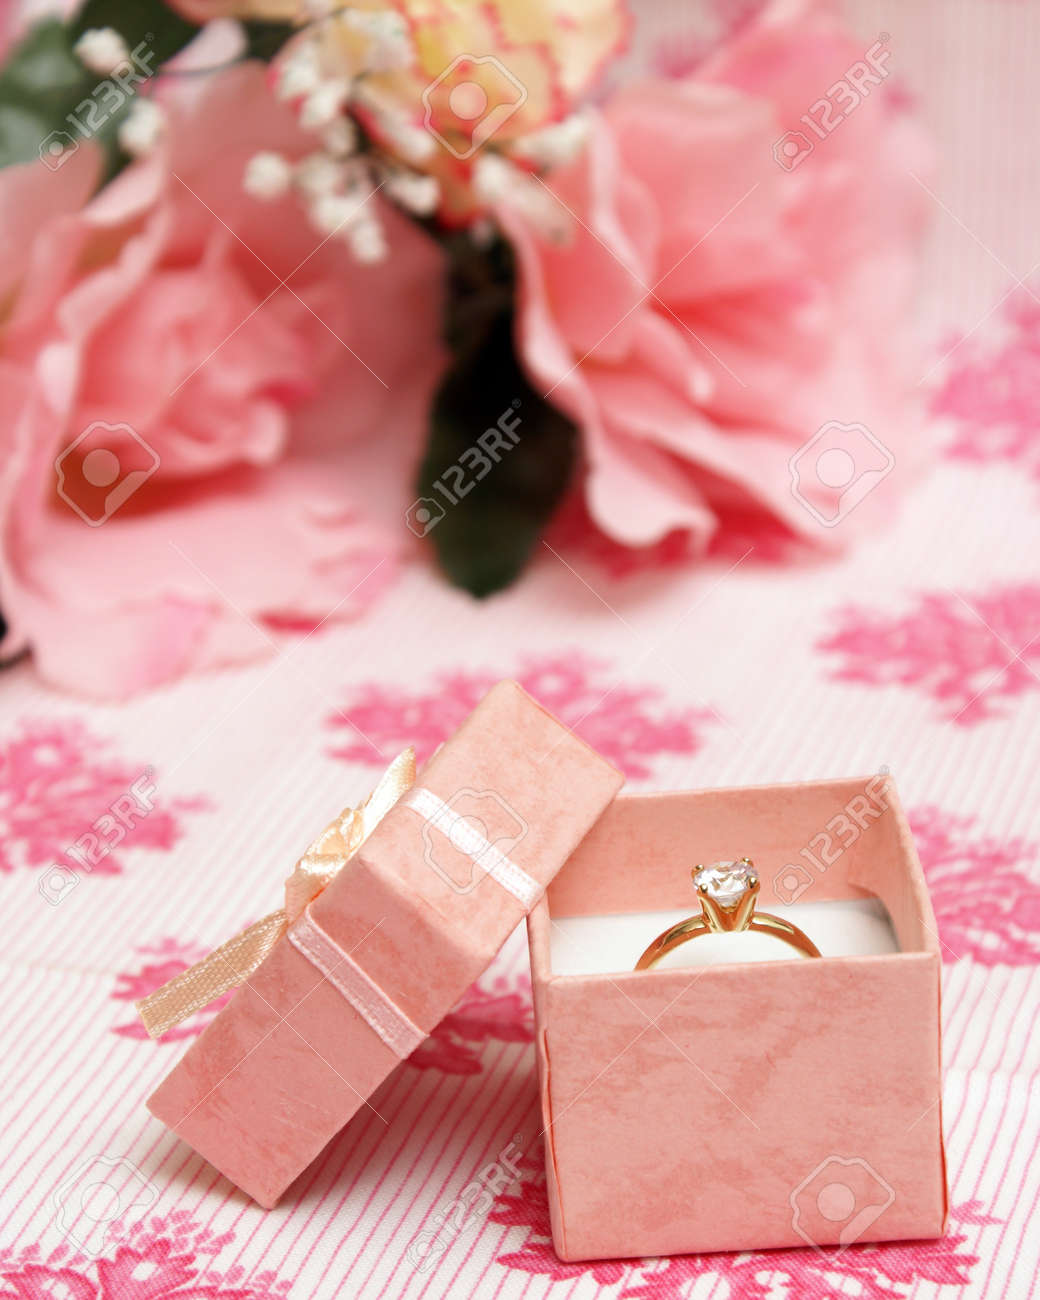 A Beautiful Diamond Ring In A Pink Jewelry Box. Stock Photo, Picture ...